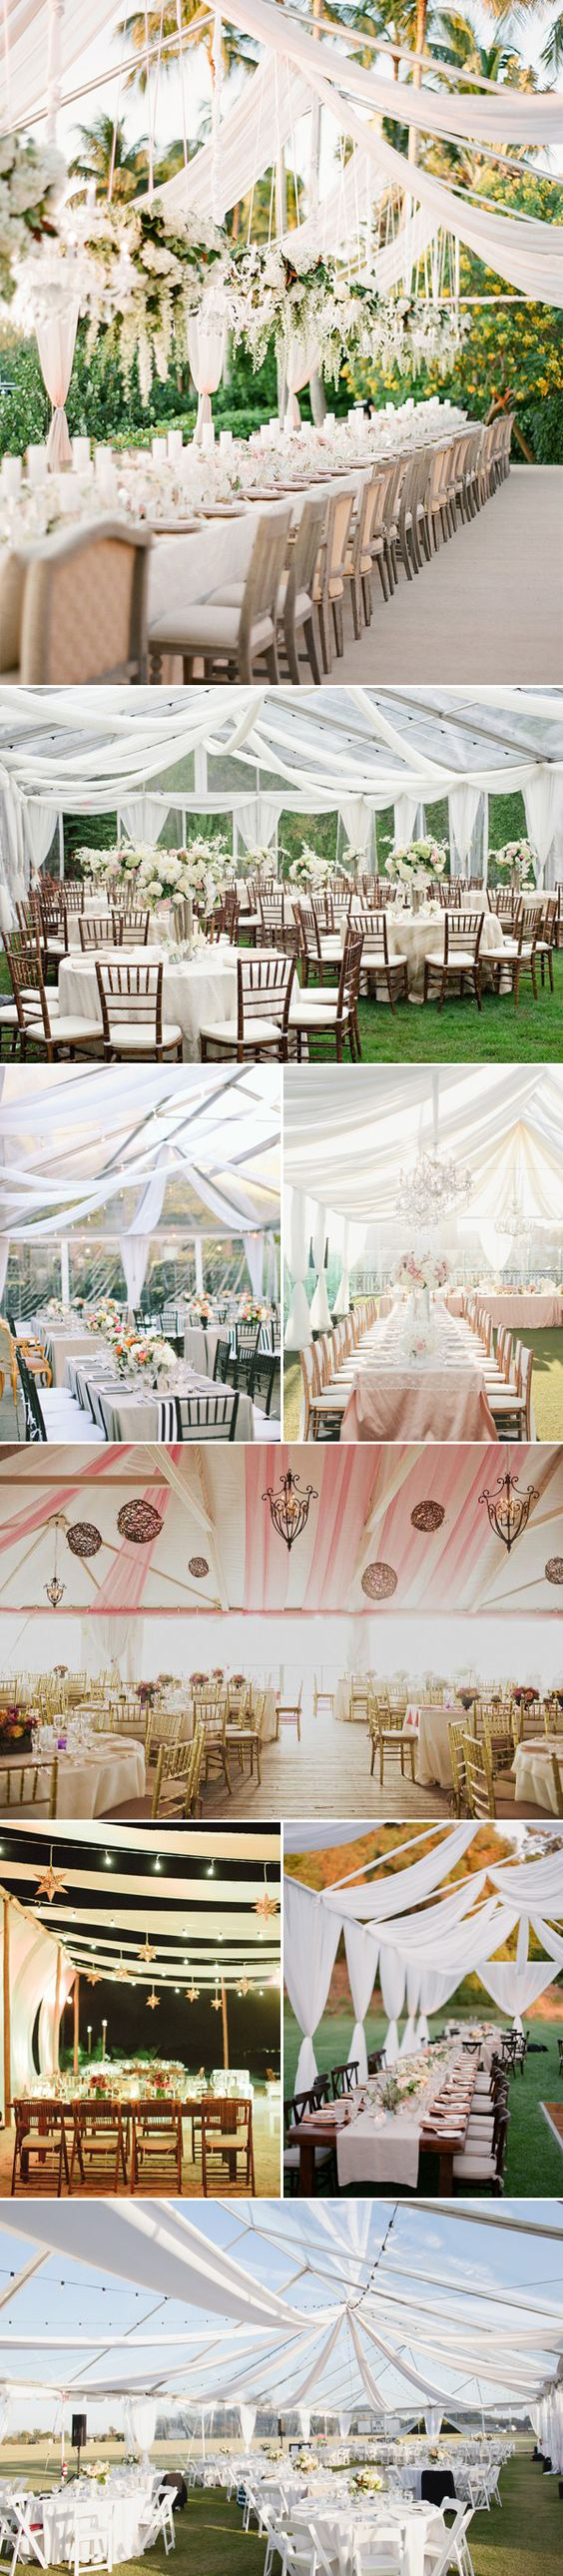 40 Beautiful Ways to Decorate Your Wedding Tent - Draped Fabric: